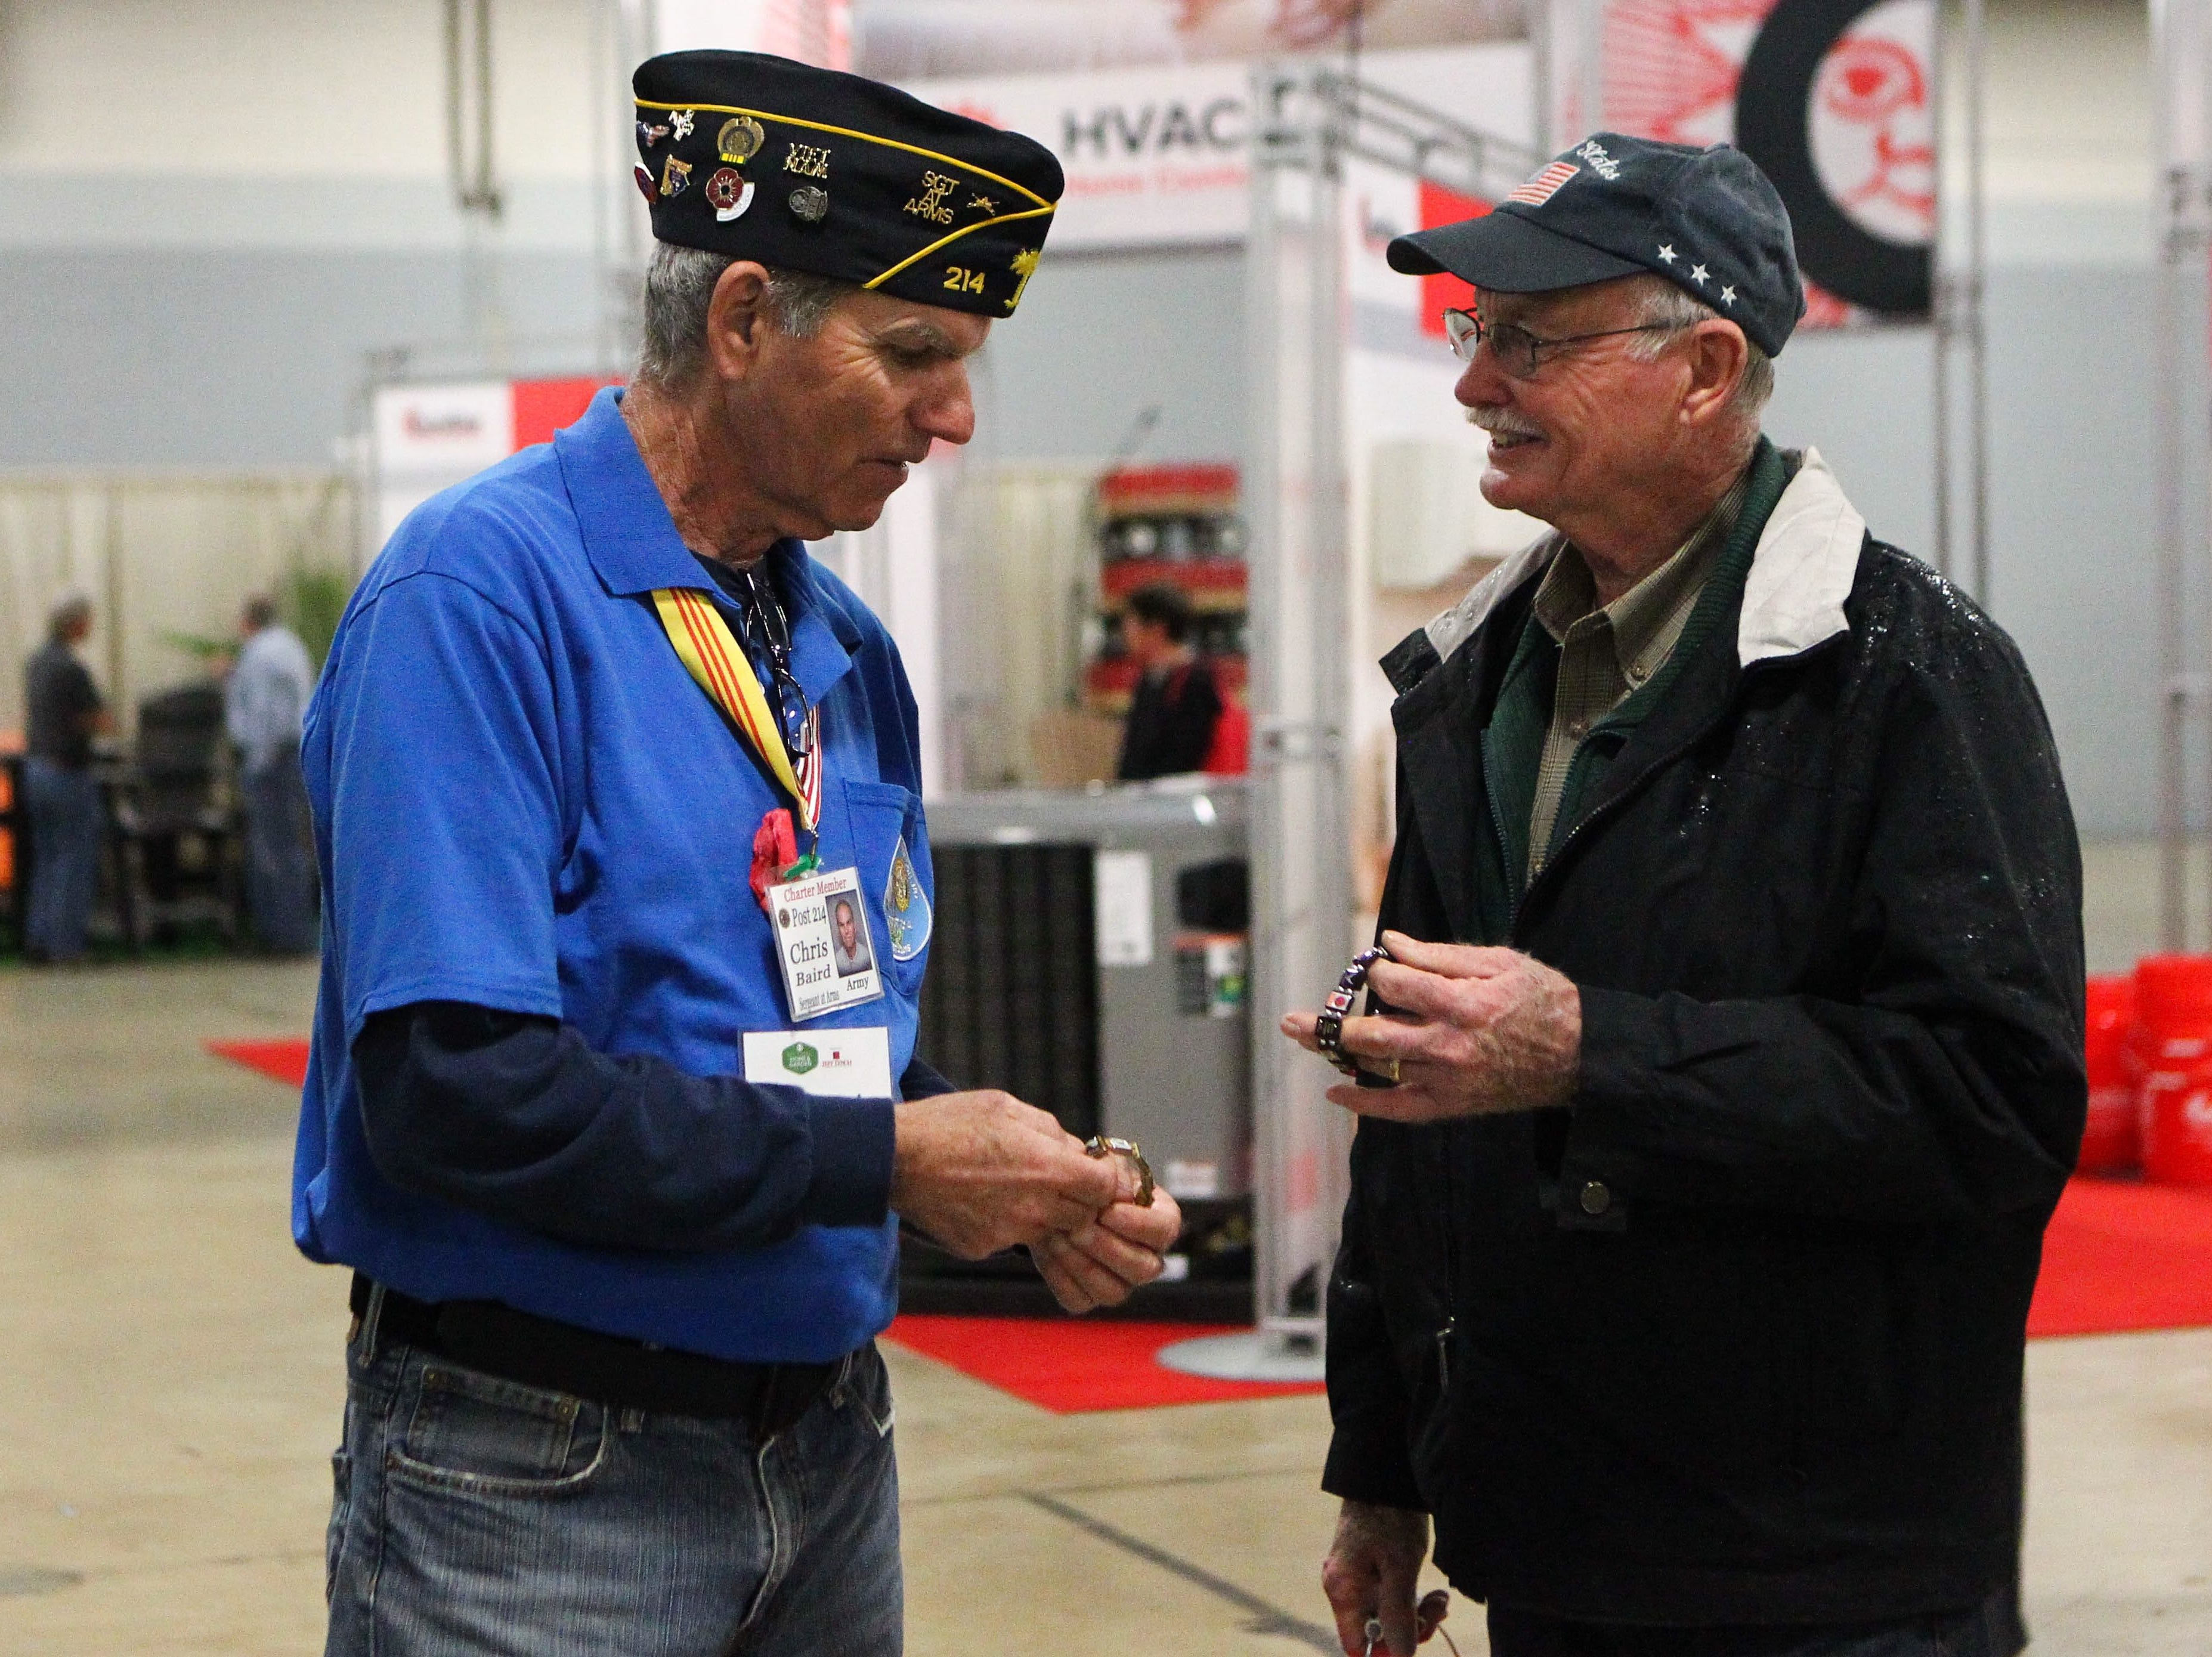 Veteran Chris Baird shows a bracelet at the Southern Home and Garden Show at the Greenville Convention Center on Friday, March 1, 2019.